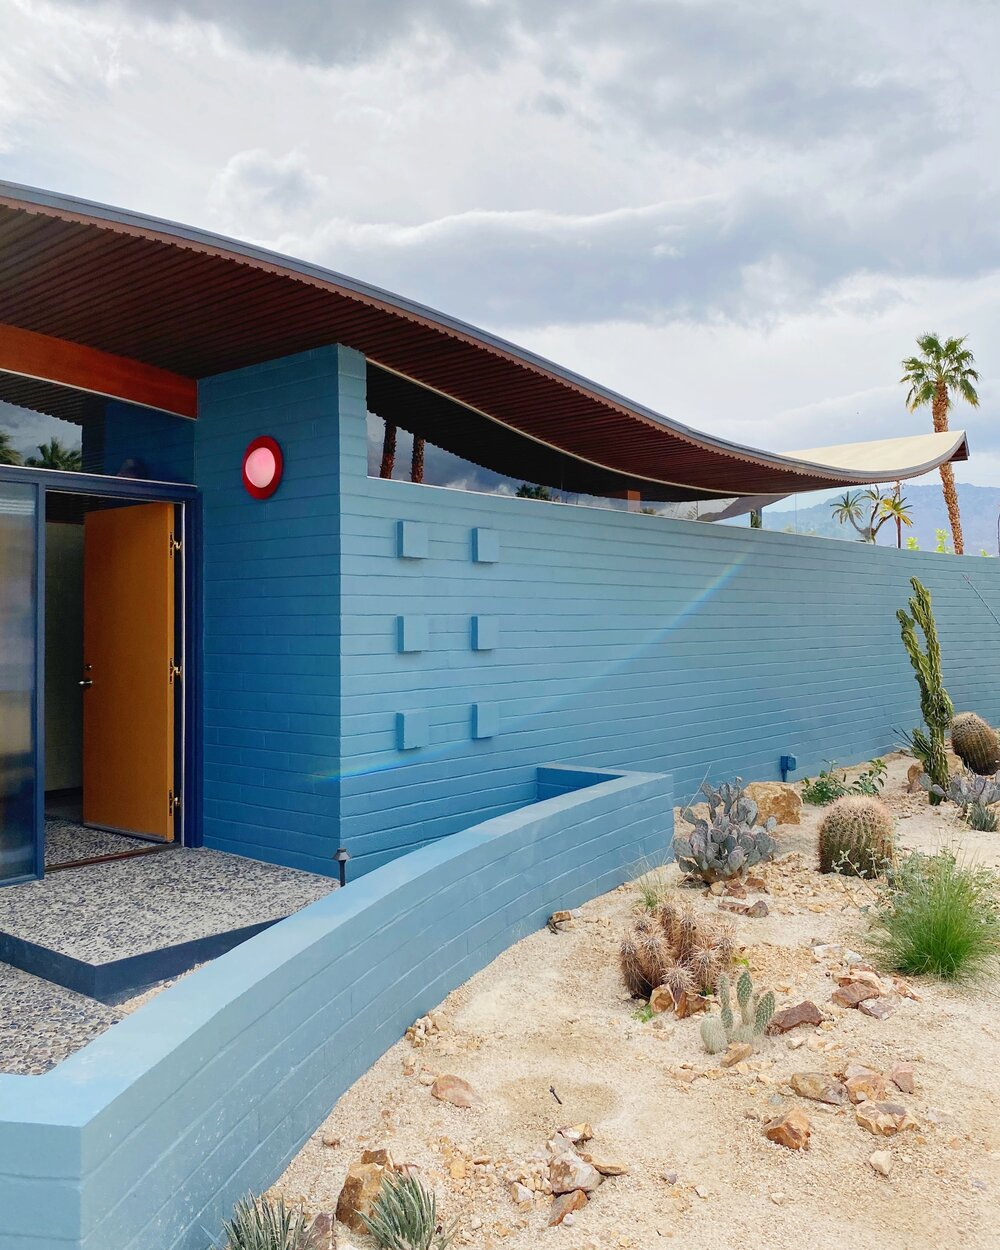 Wave house, Palm Spring. Walter S White 1955 Img_2912